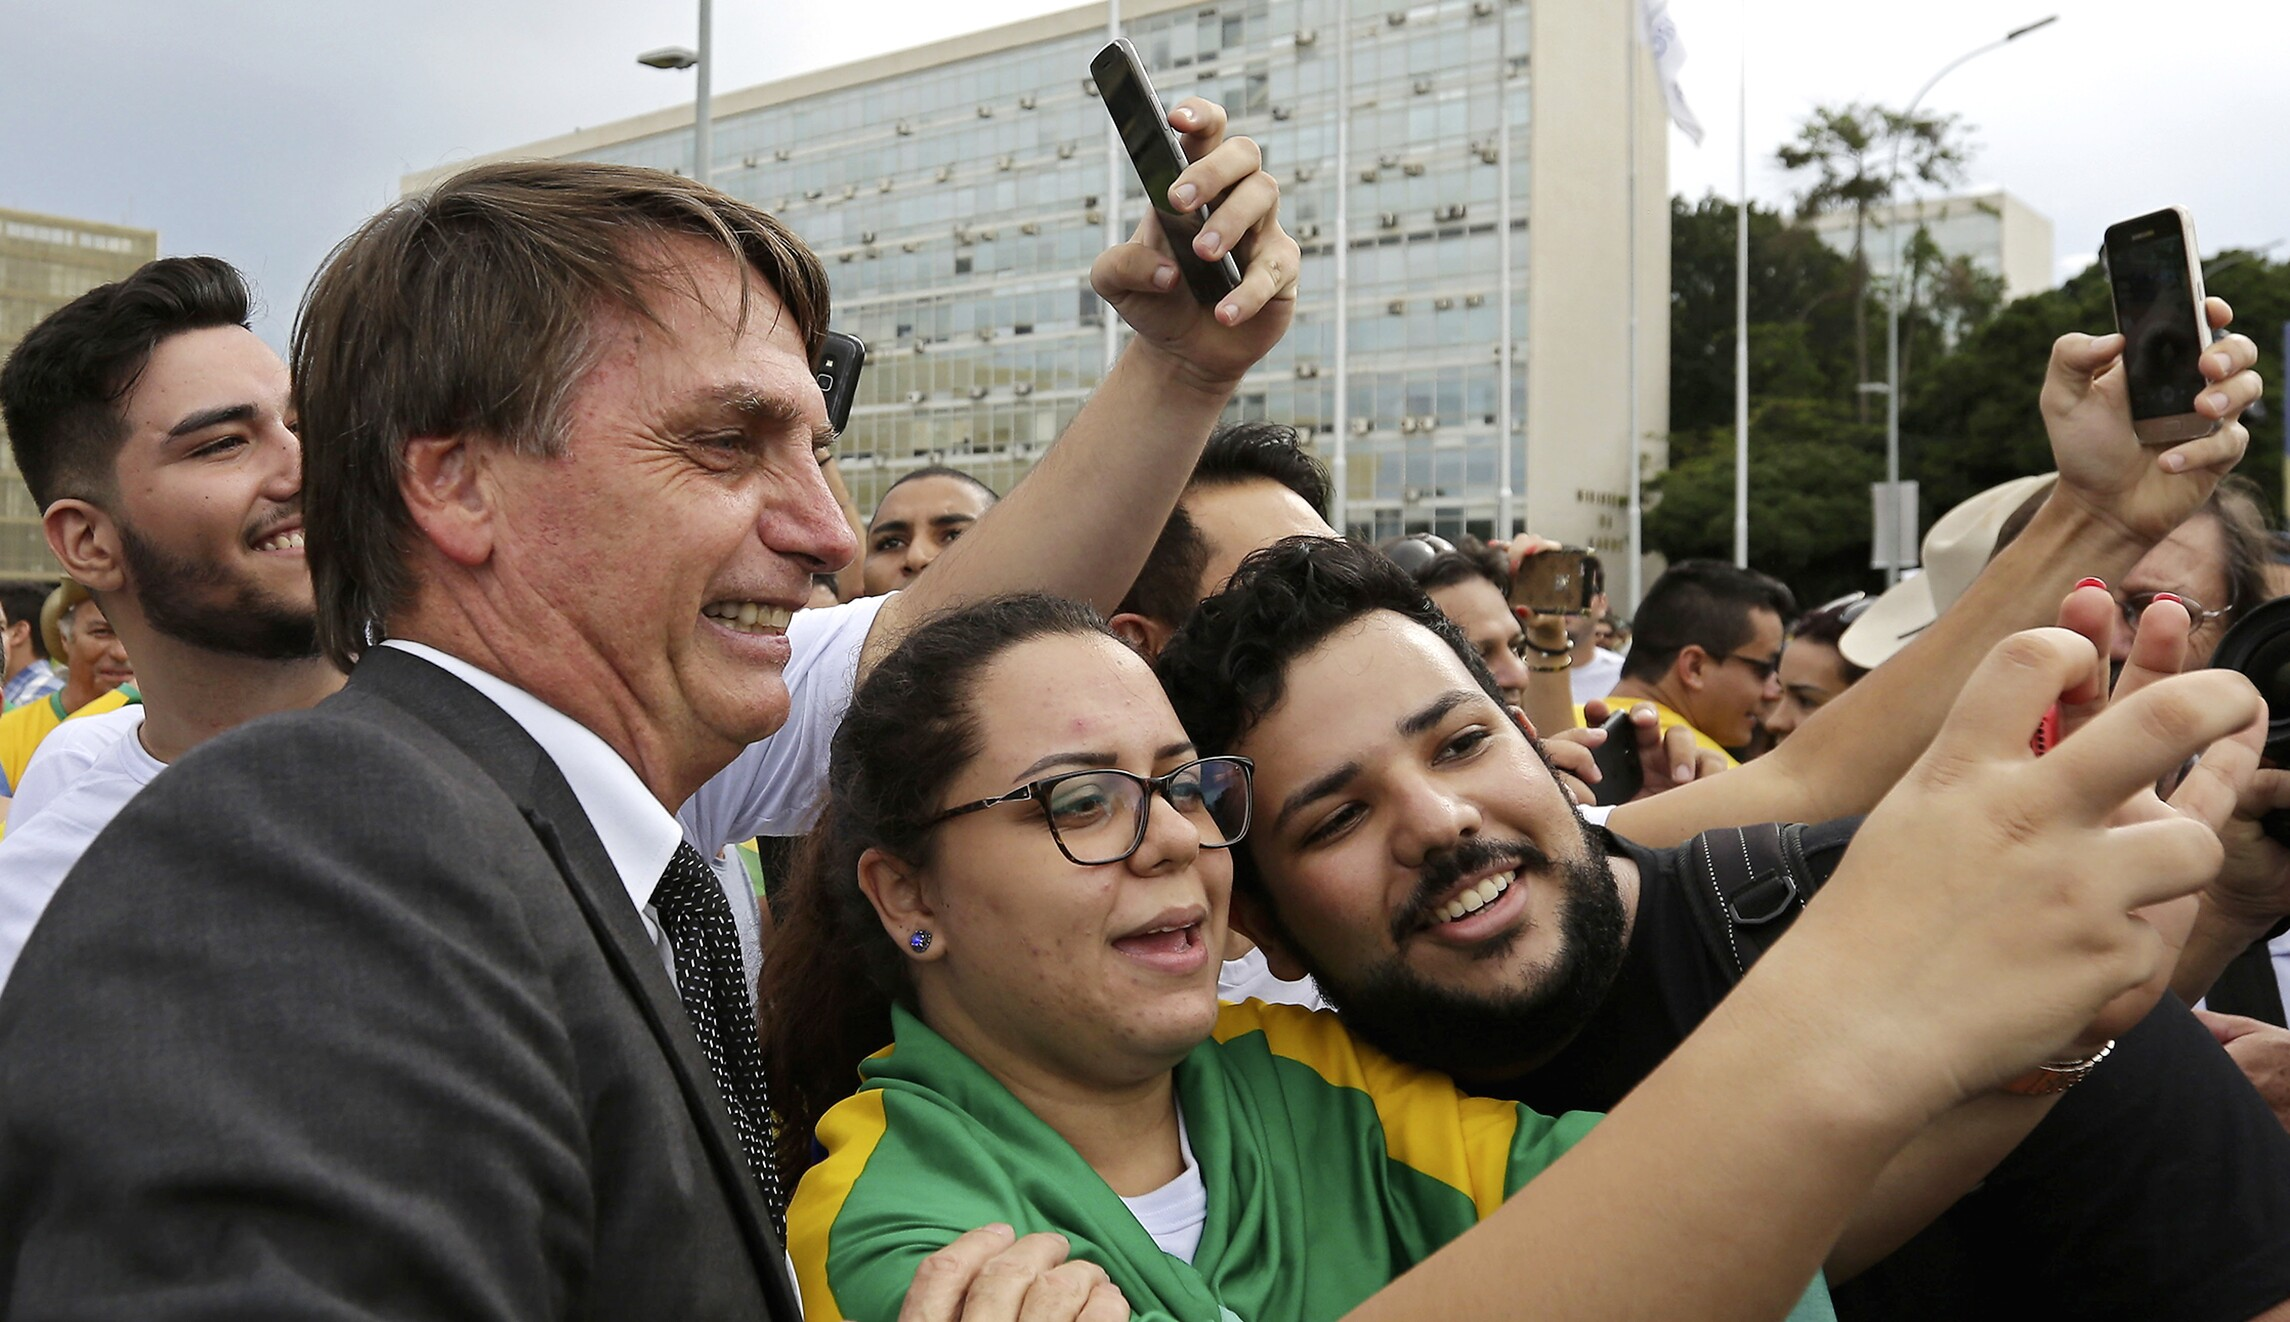 Demonstrators opposed to Brazil's former President Luiz Inacio Lula da Silva have their picture taken with lawmaker Jair Bolsonaro, the main right-wing candidate for the October presidential election, during a protest in Brasilia, Brazil.